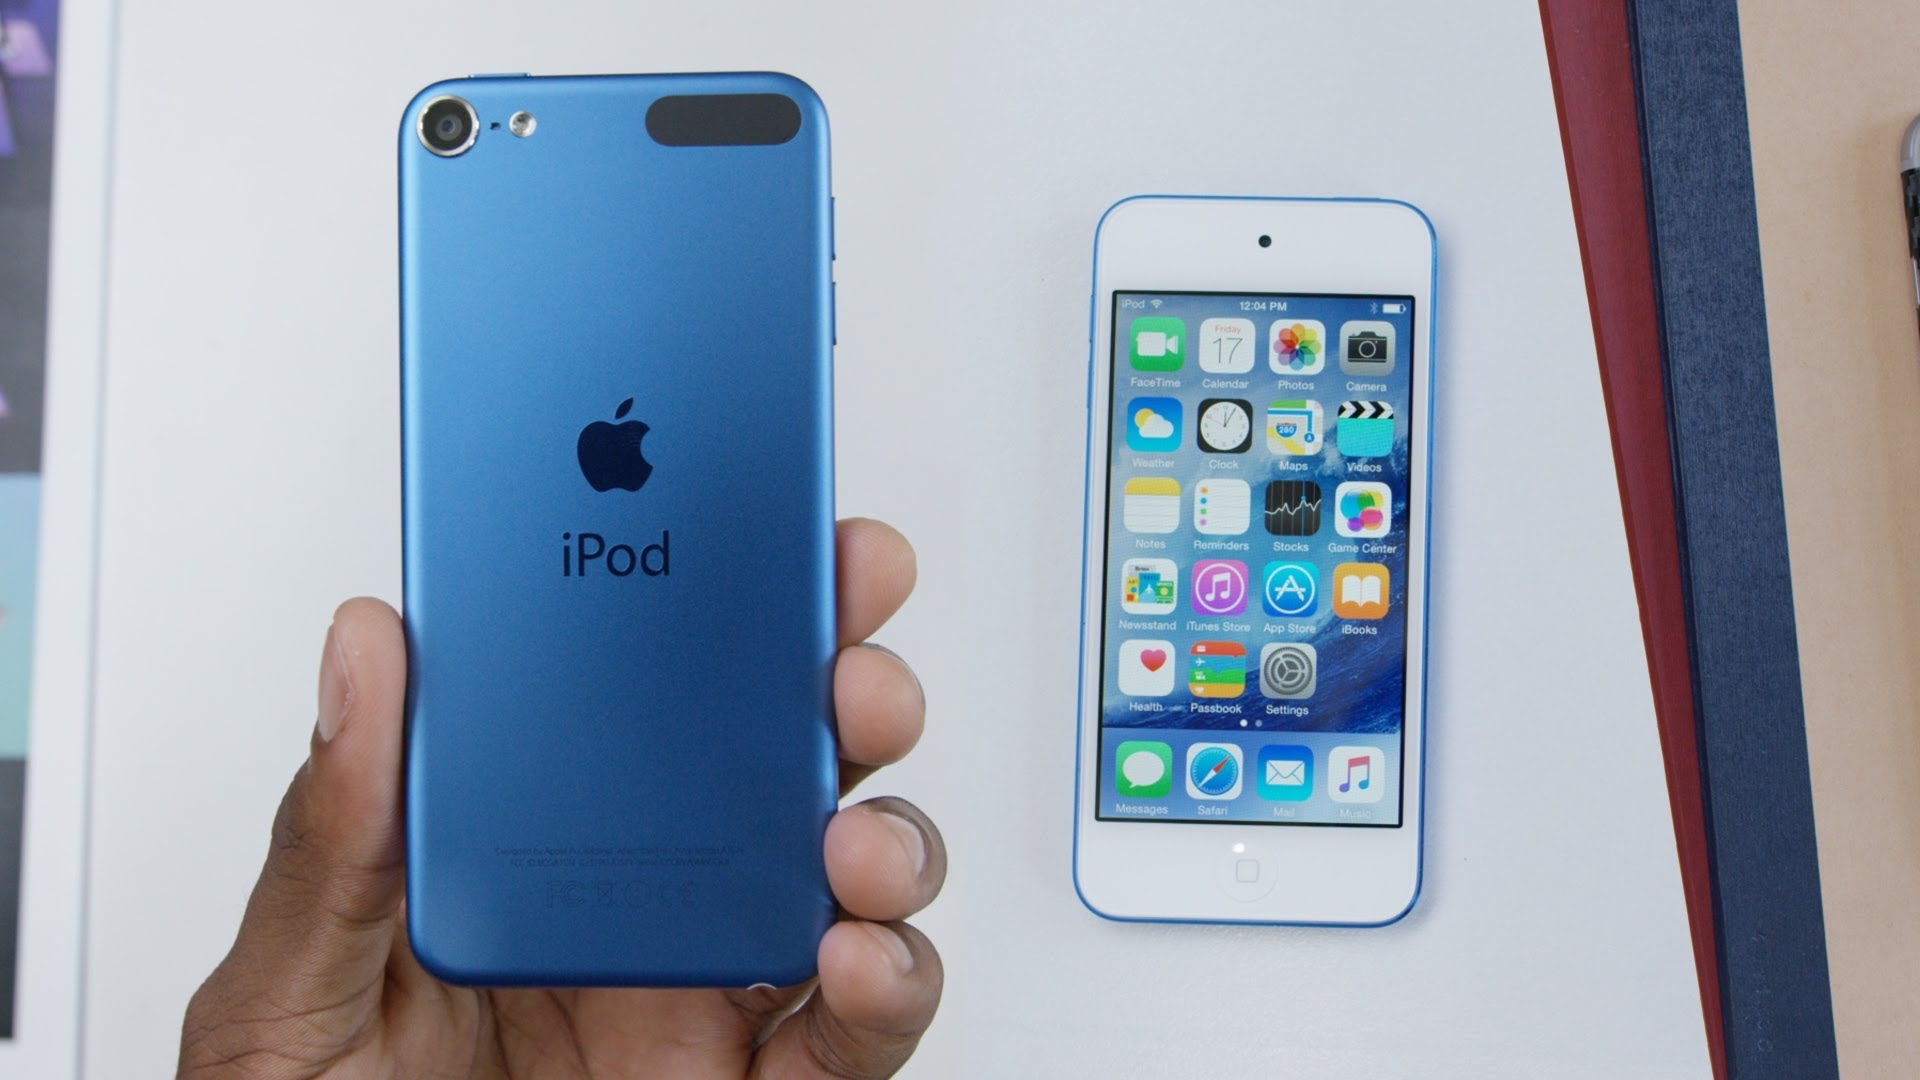 Apple Ipod Touch 2015 Review Compsmag 6 16gb Gold